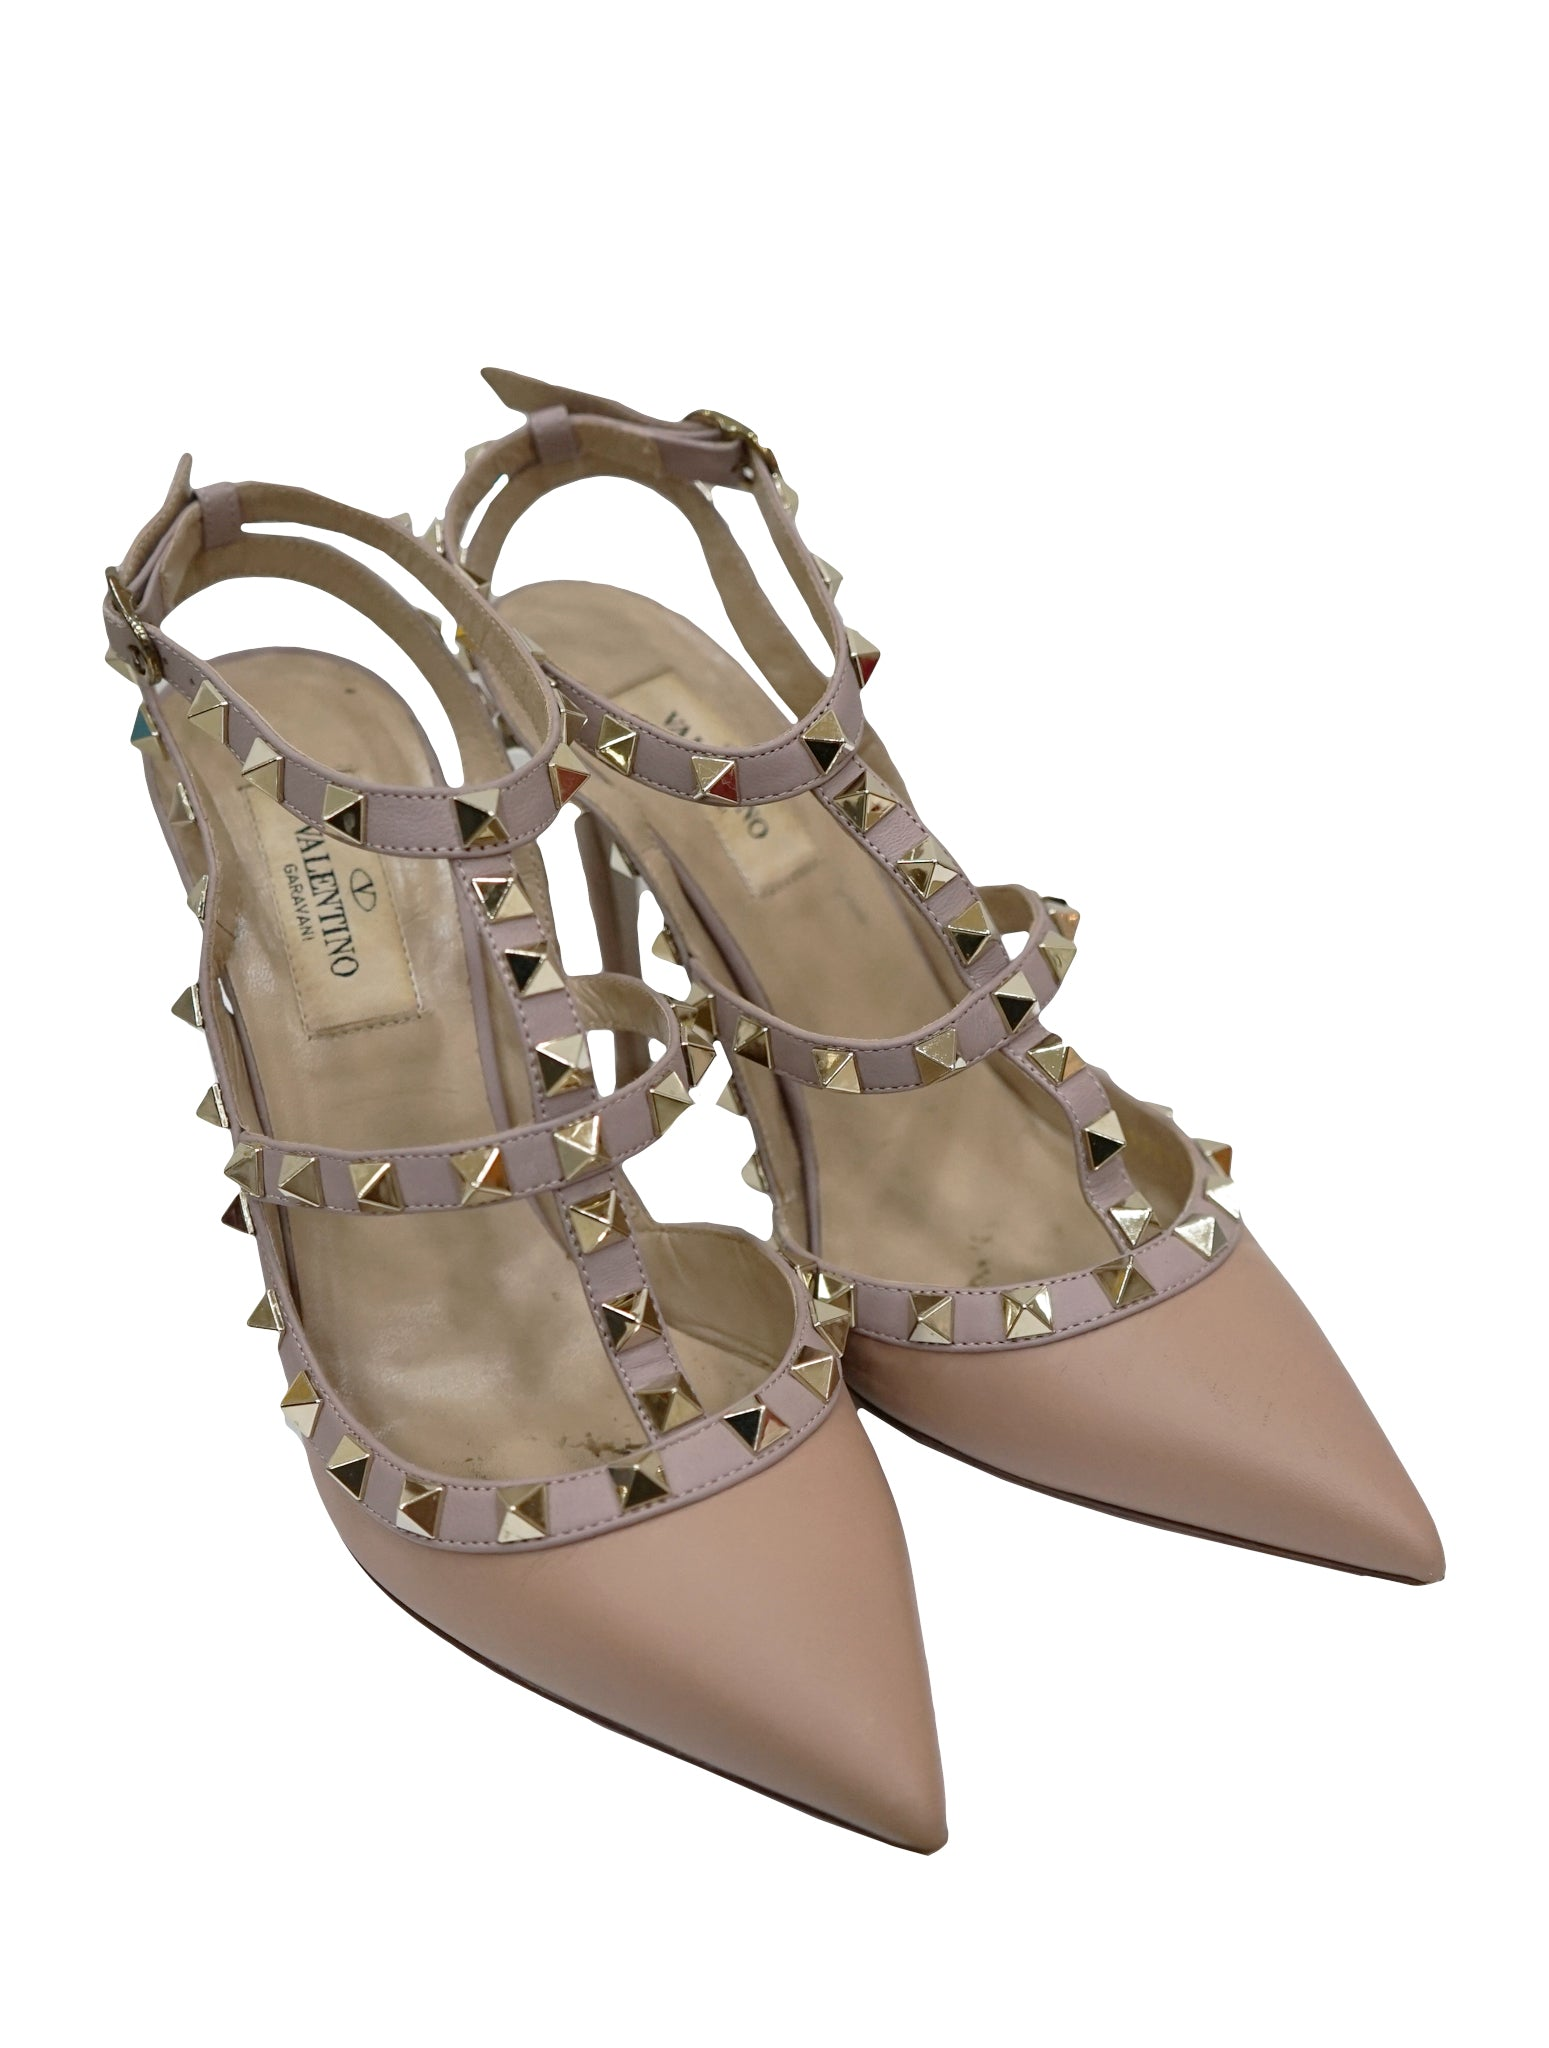 BEIGE PATENT LEATHER ROCKSTUD SANDALS